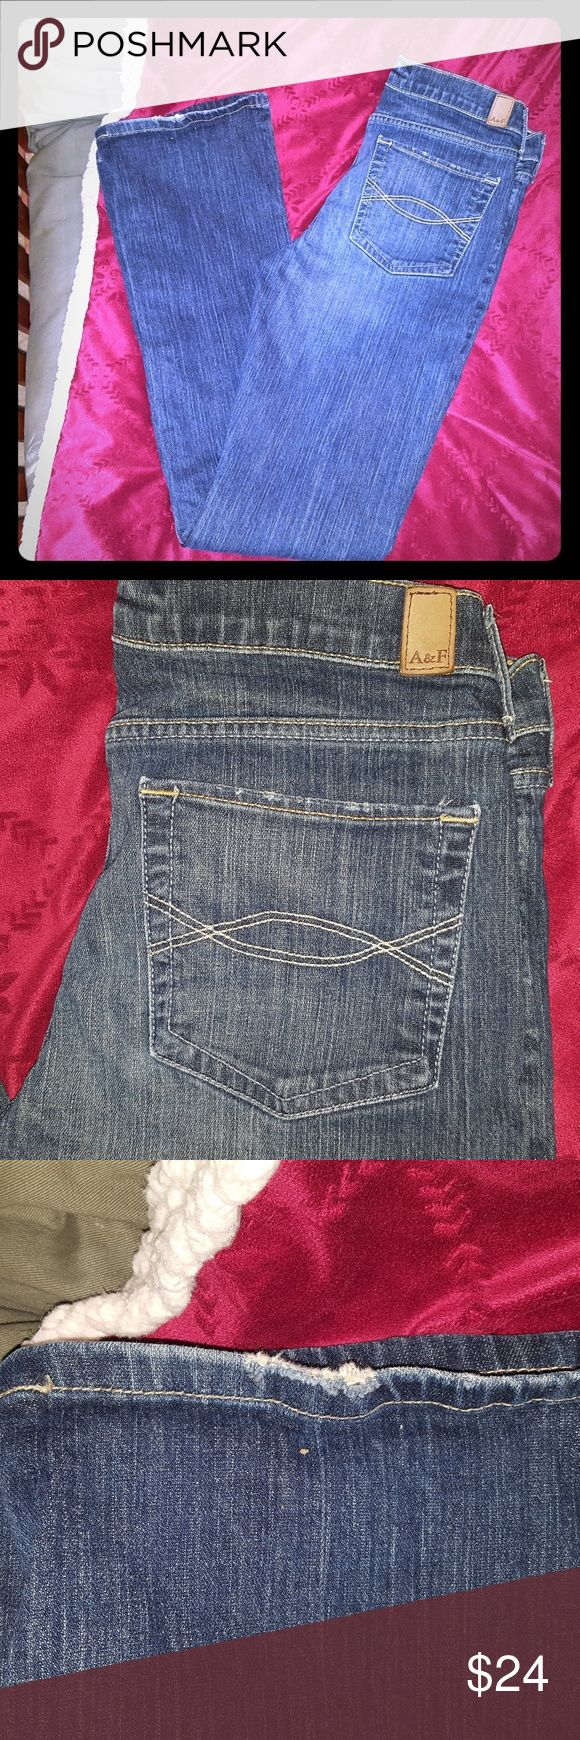 ABERCROMBIE AND FITCH JEANS These vintage darker denim jeans have a slight distressed look on the bottom of the leg on the him and also on the back pockets. The inseam is 33 inches. They are stretch jeans and the style is Emma. Abercrombie & Fitch Jeans Boot Cut